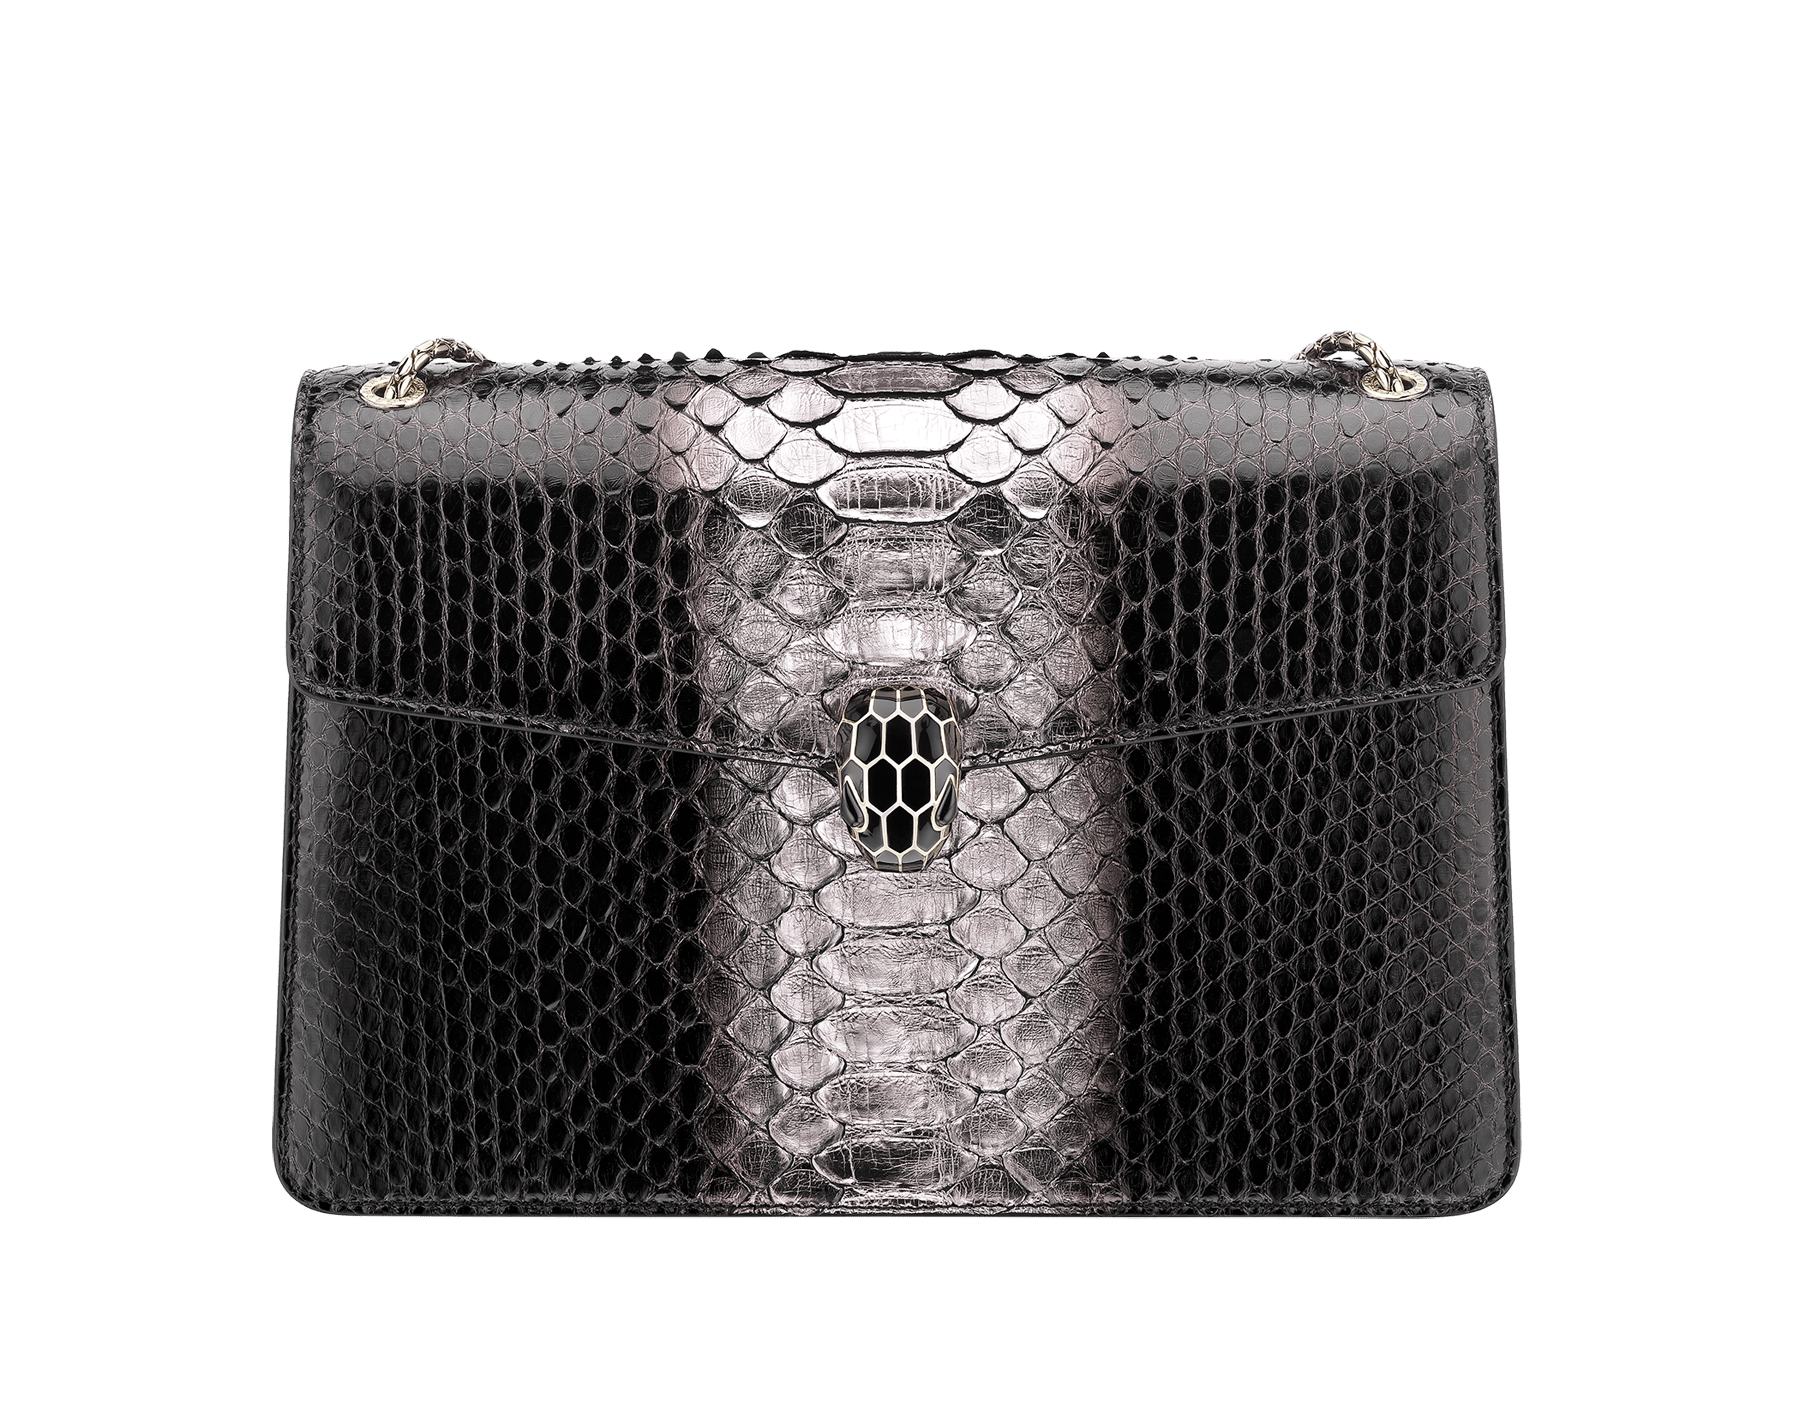 Serpenti Forever shoulder bag in black and silver shaded python skin. Snakehead closure in light gold plated brass decorated with black enamel, and black onyx eyes. 288494 image 1